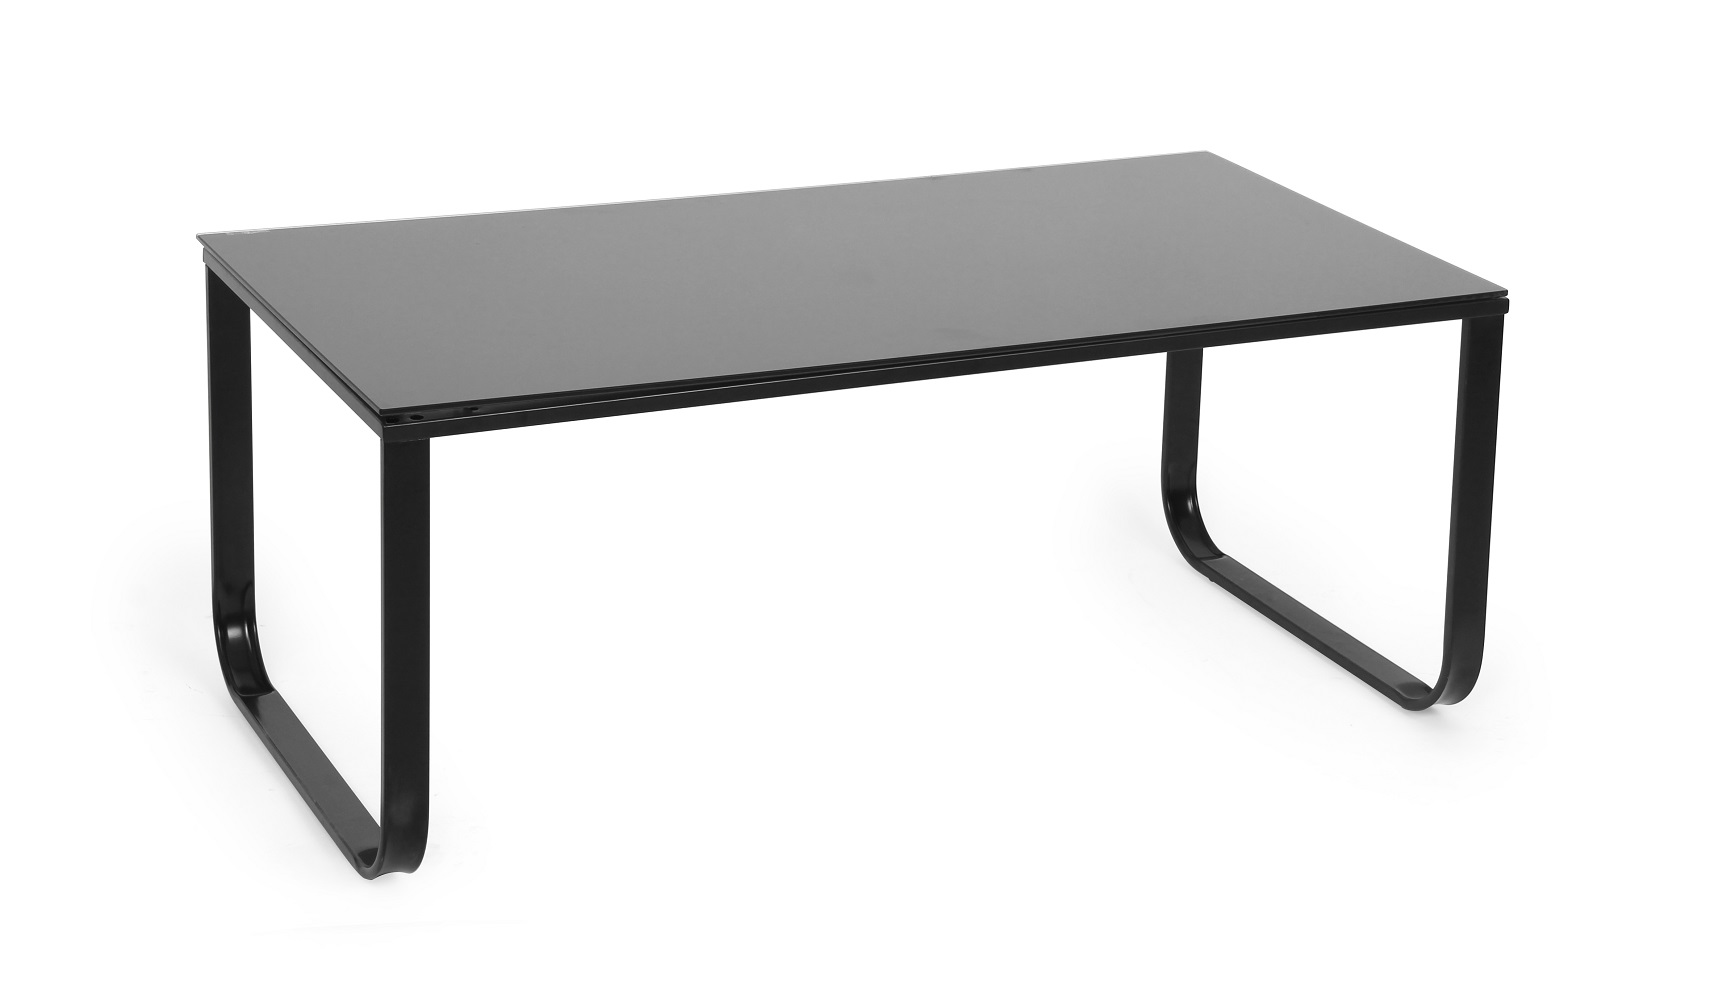 Modern Rectangle Black Glass Iron Leg Coffee Table End Accent Table Living Room Ebay